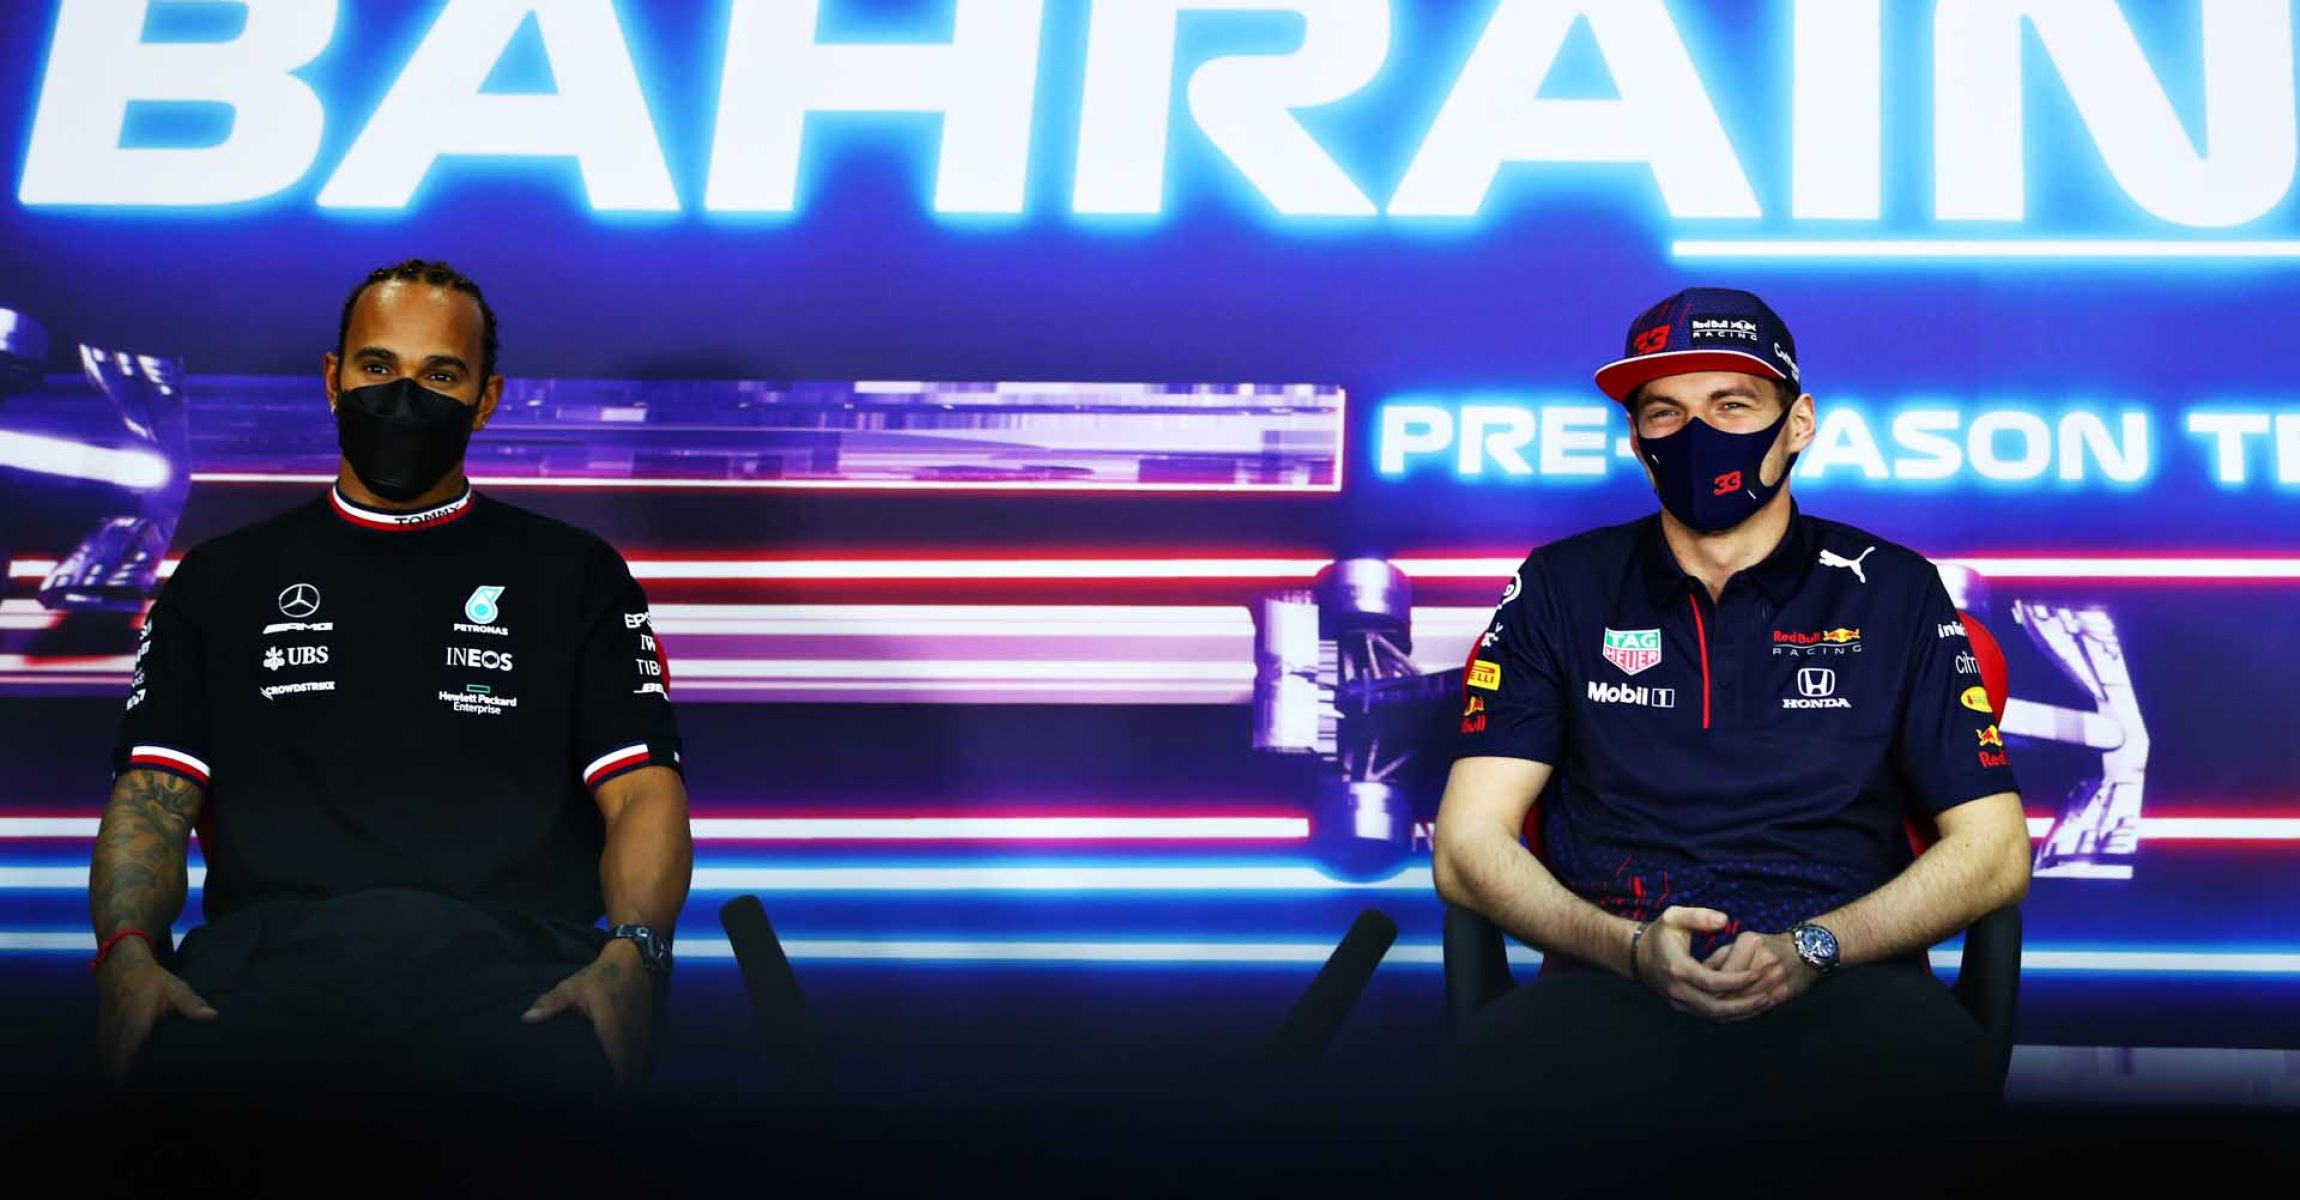 BAHRAIN, BAHRAIN - MARCH 14: Lewis Hamilton of Great Britain and Mercedes GP and Max Verstappen of Netherlands and Red Bull Racing talk in a press conference during Day Three of F1 Testing at Bahrain International Circuit on March 14, 2021 in Bahrain, Bahrain. (Photo by Dan Istitene/Getty Images) // Getty Images / Red Bull Content Pool  // SI202103140133 // Usage for editorial use only //